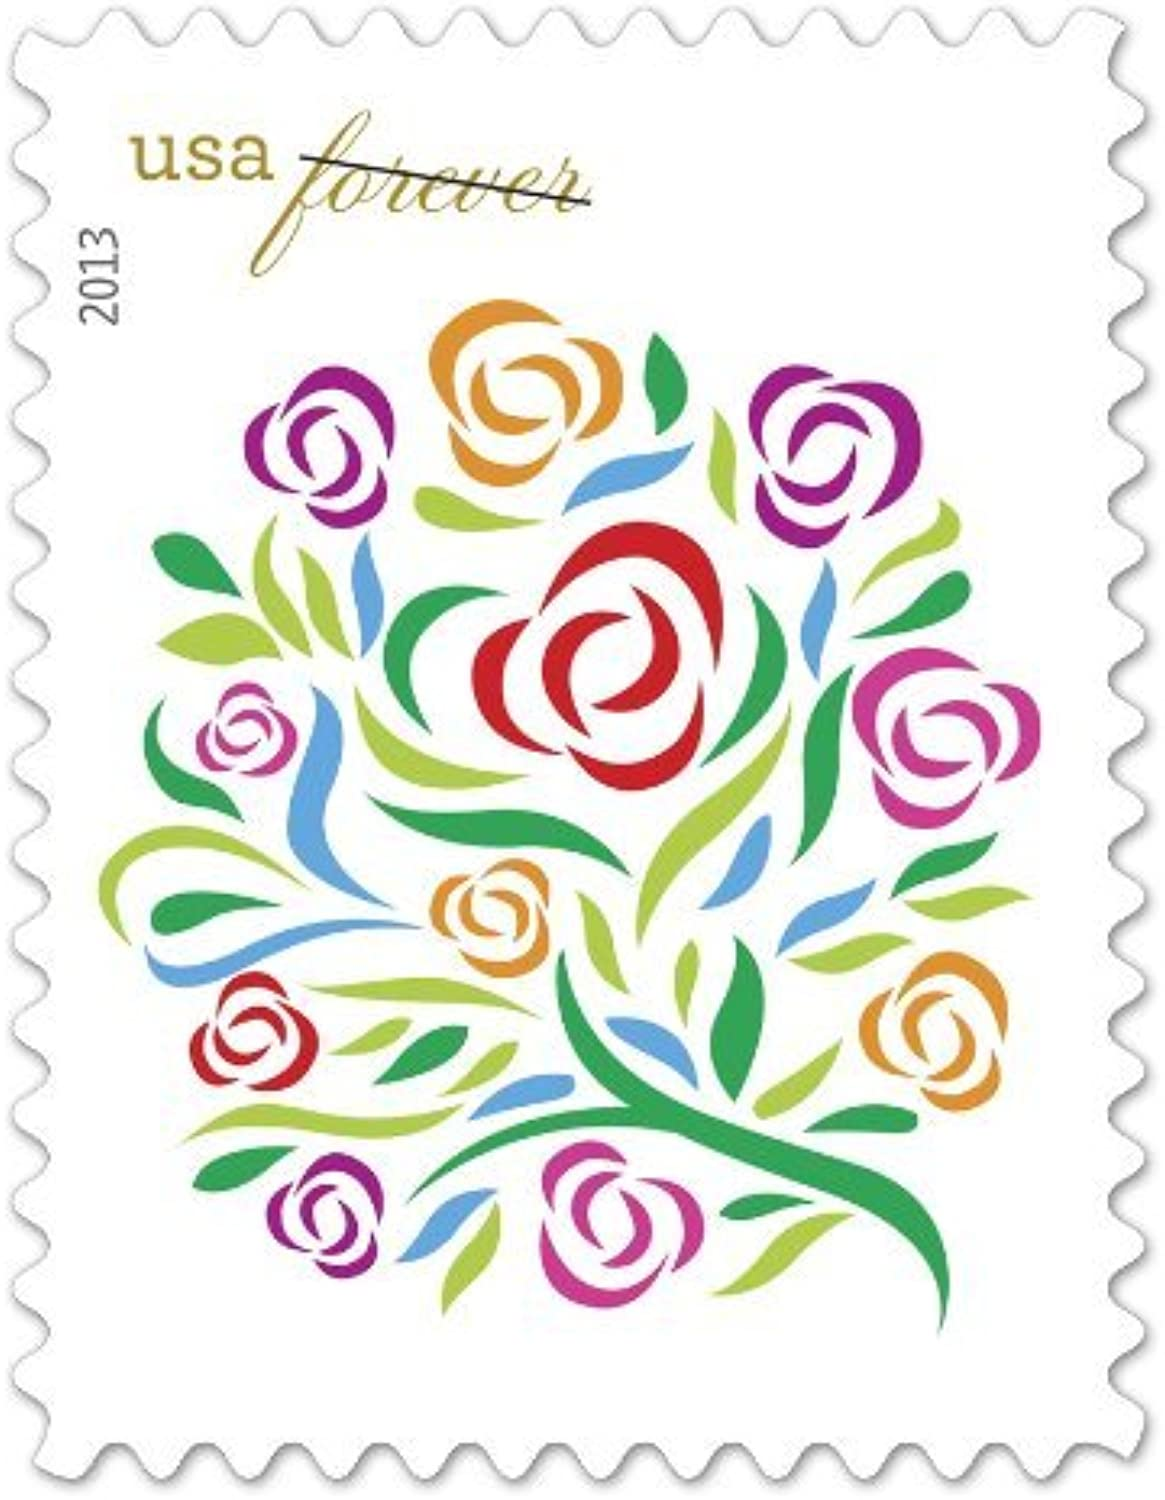 Where Dreams Blossom US Postage Forever Stamps by USPS